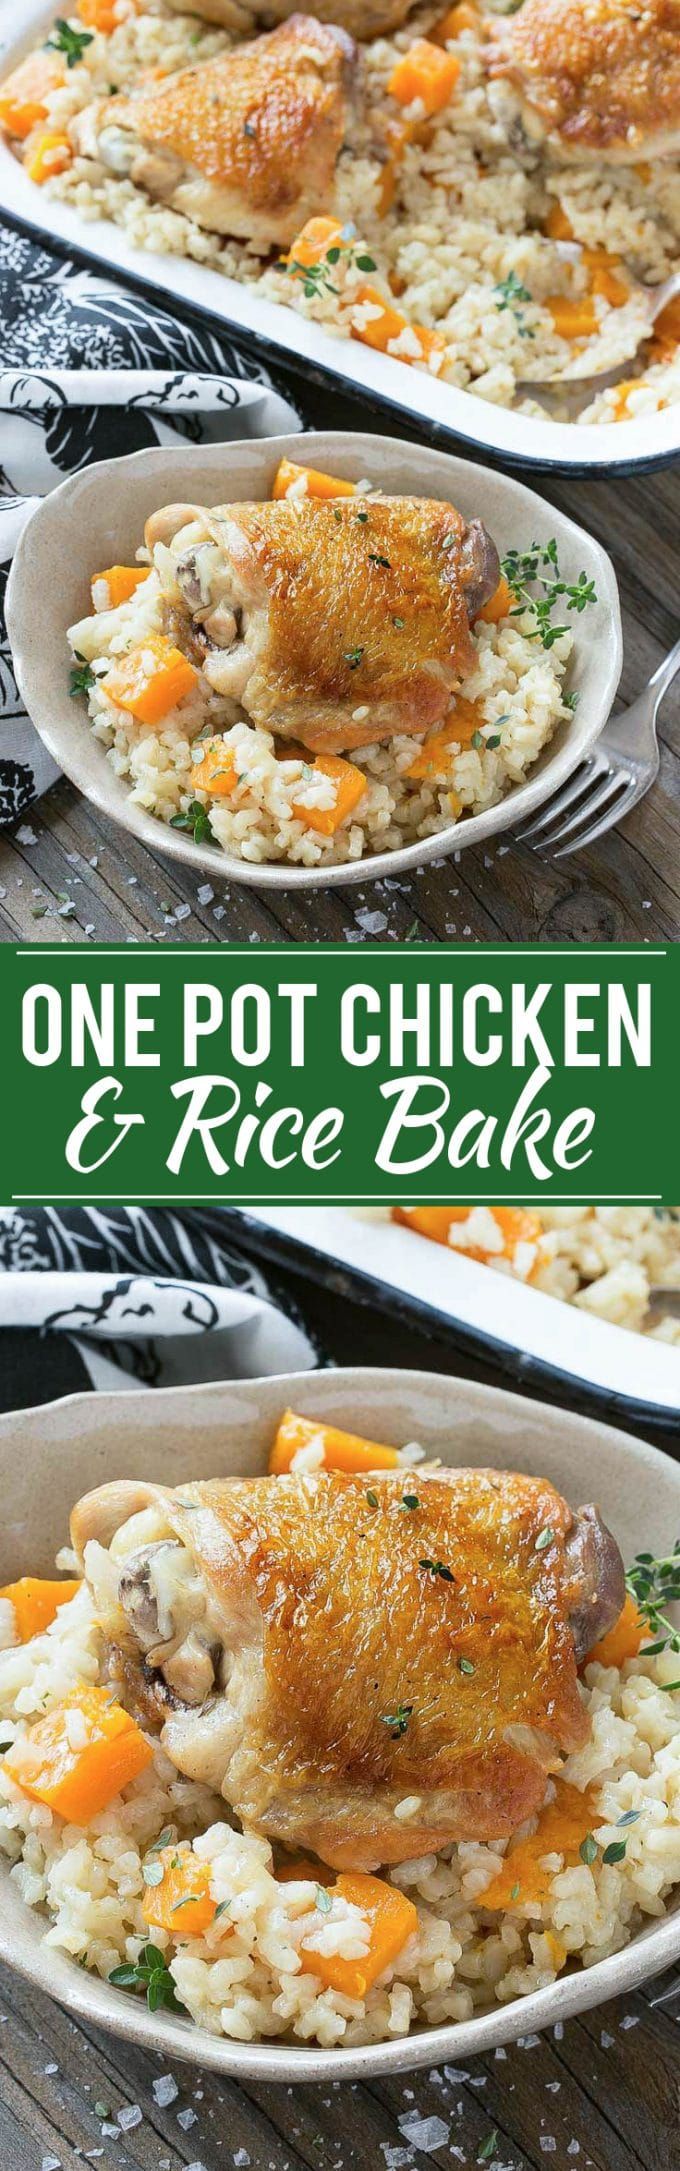 One Pot Oven Chicken And Rice Bake Recipe One Pot Chicken With Creamy  Parmesan Rice One